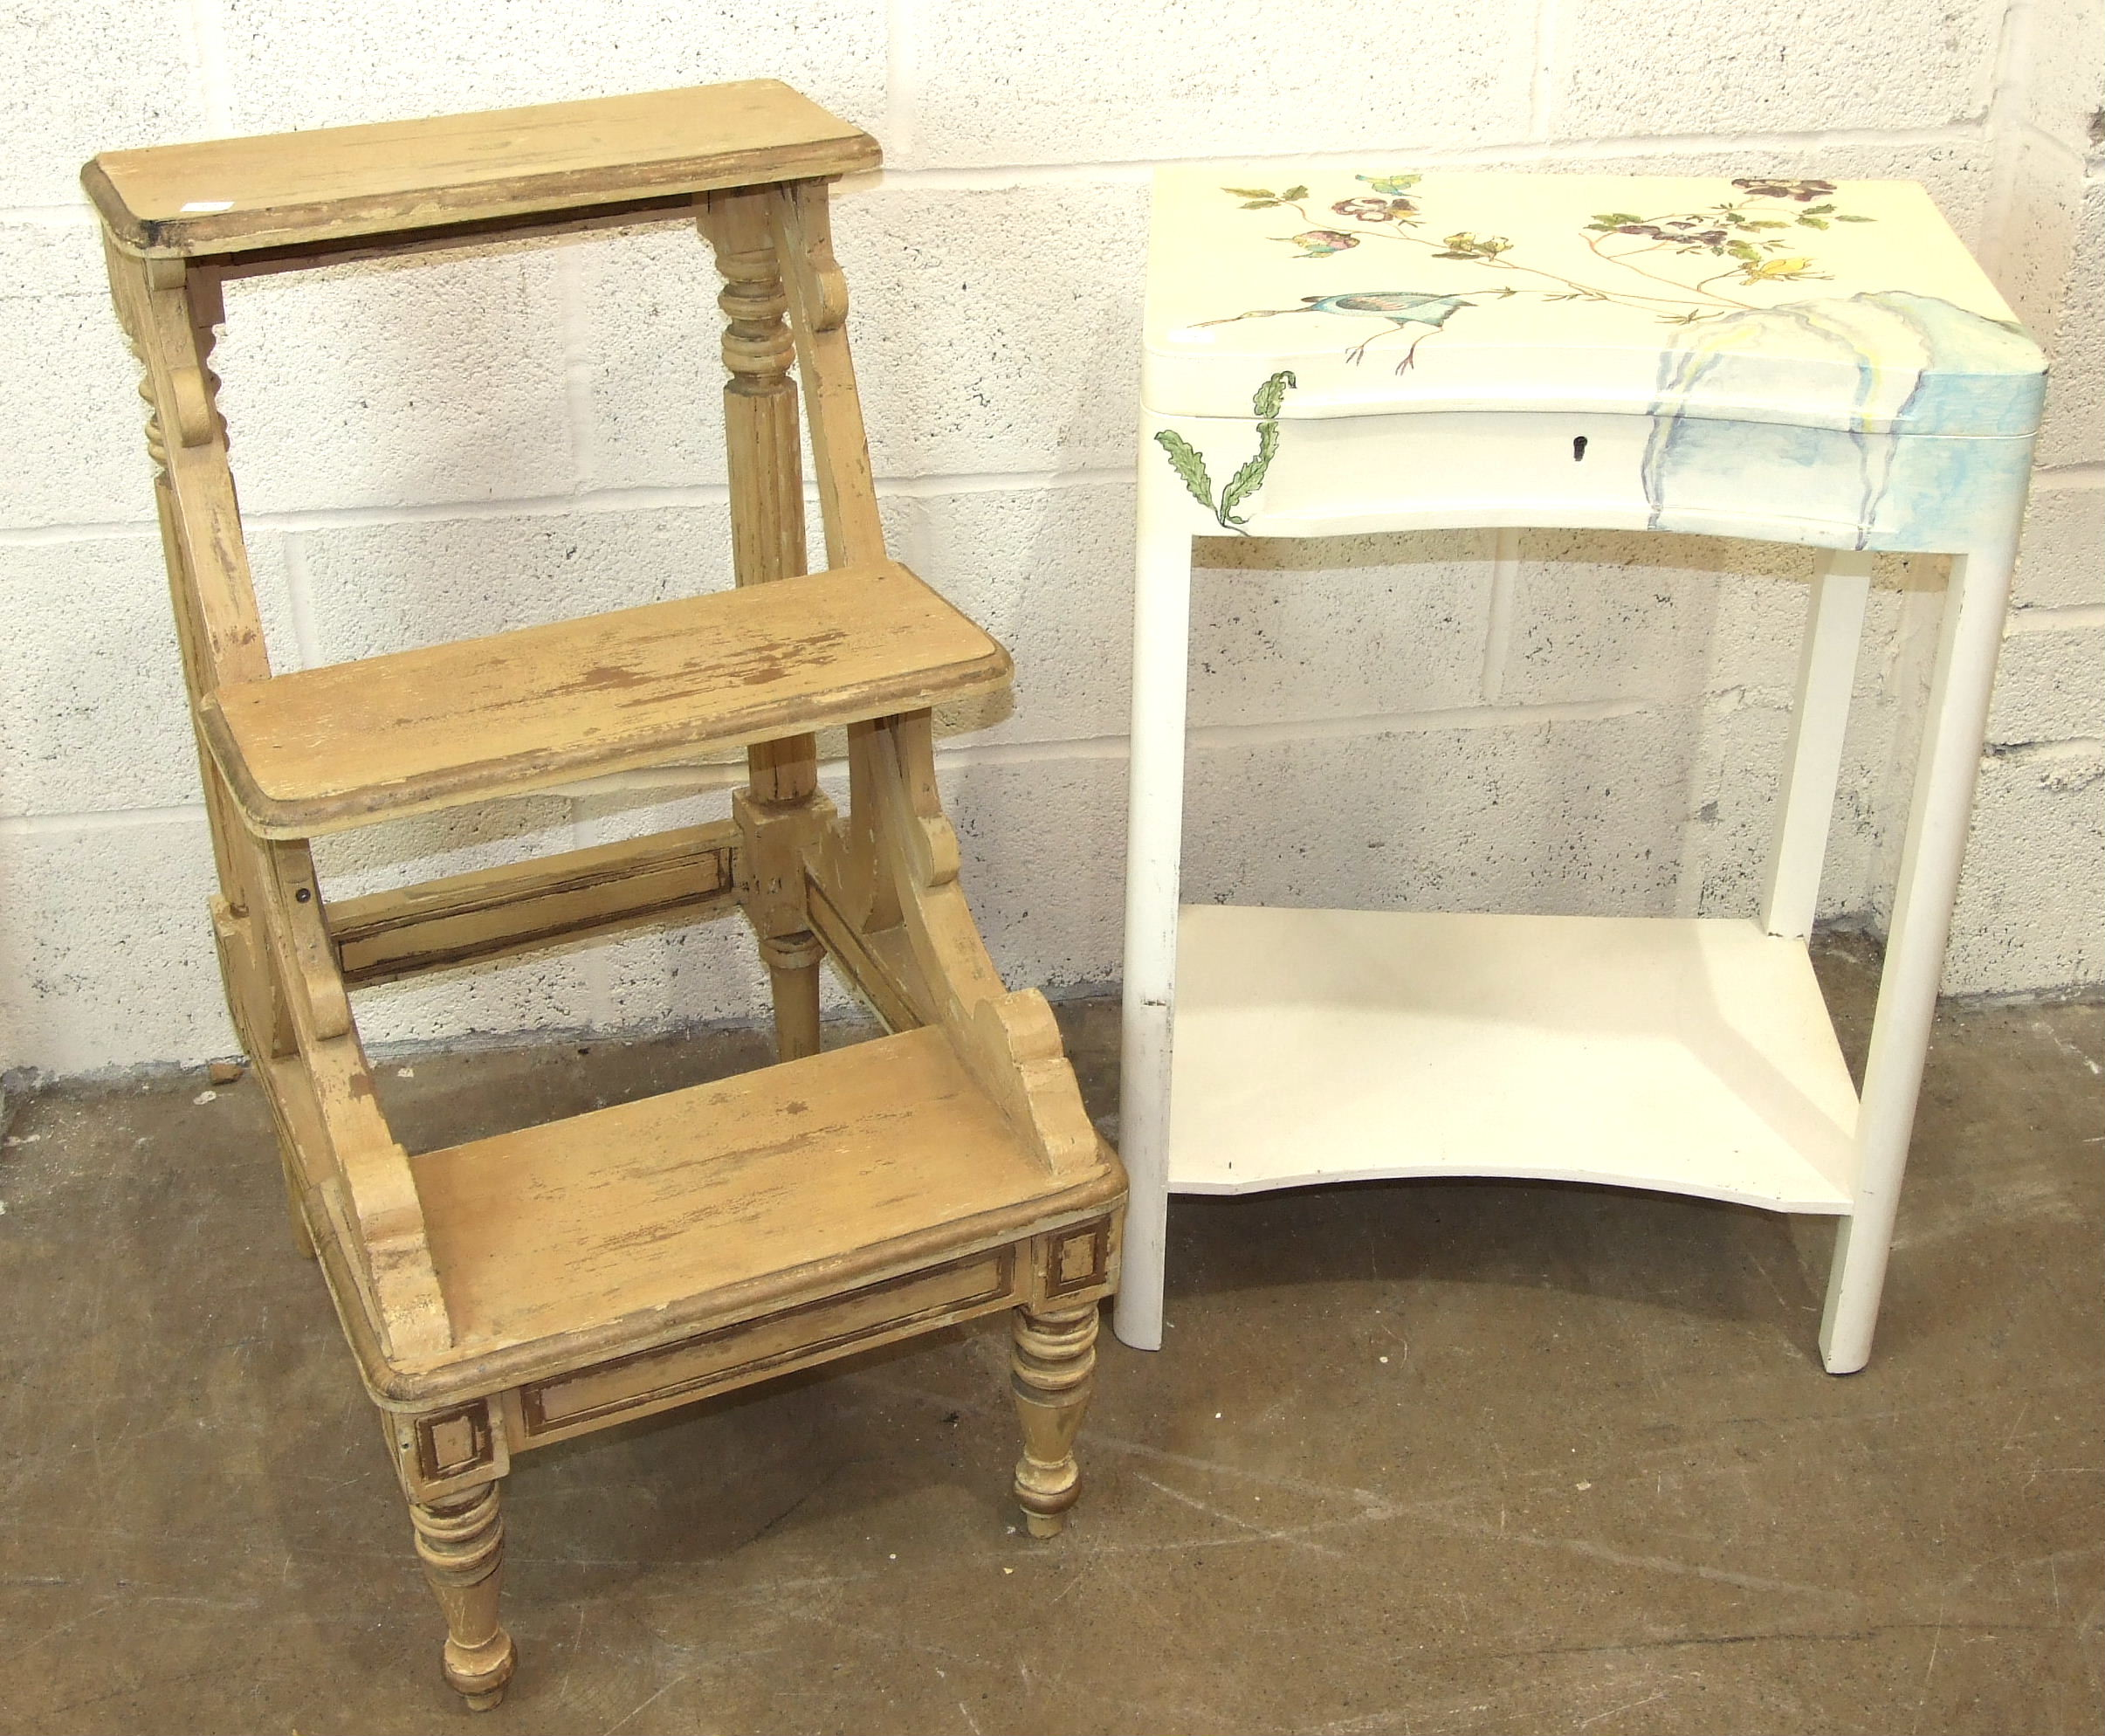 A set of painted wood library steps, 45cm wide, 80cm high and other painted furniture.